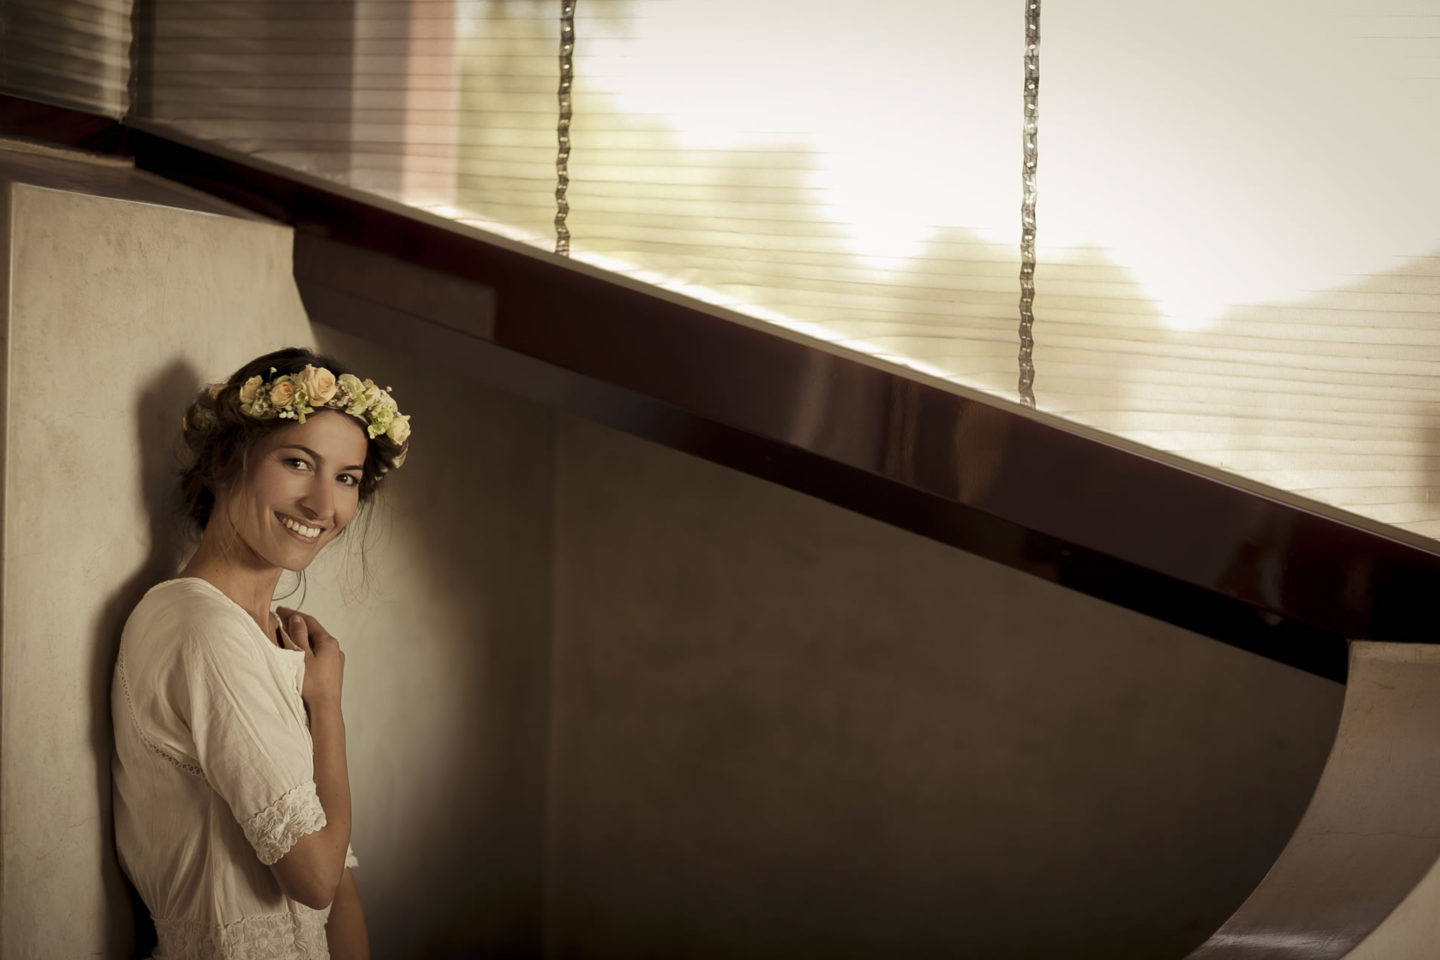 Simplicity :: Bride alone :: David Bastianoni wedding photographer